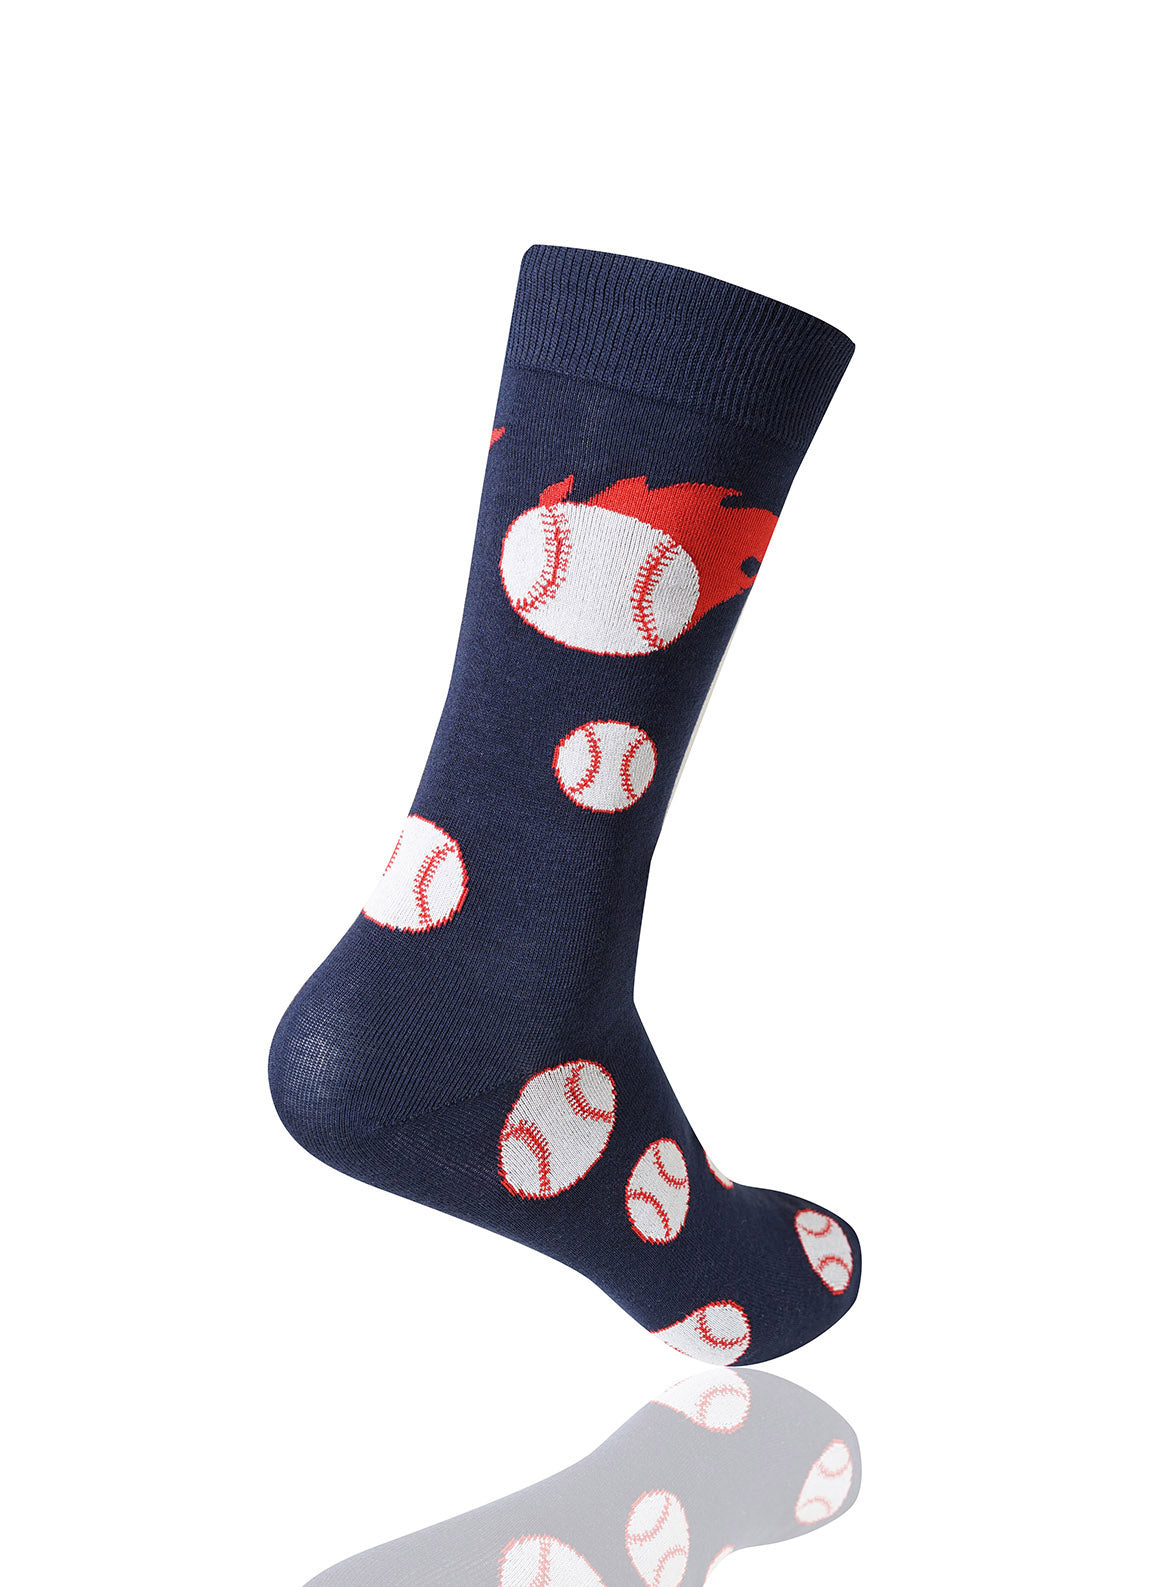 NAVY The Heater Novelty Socks - URBANCREWS